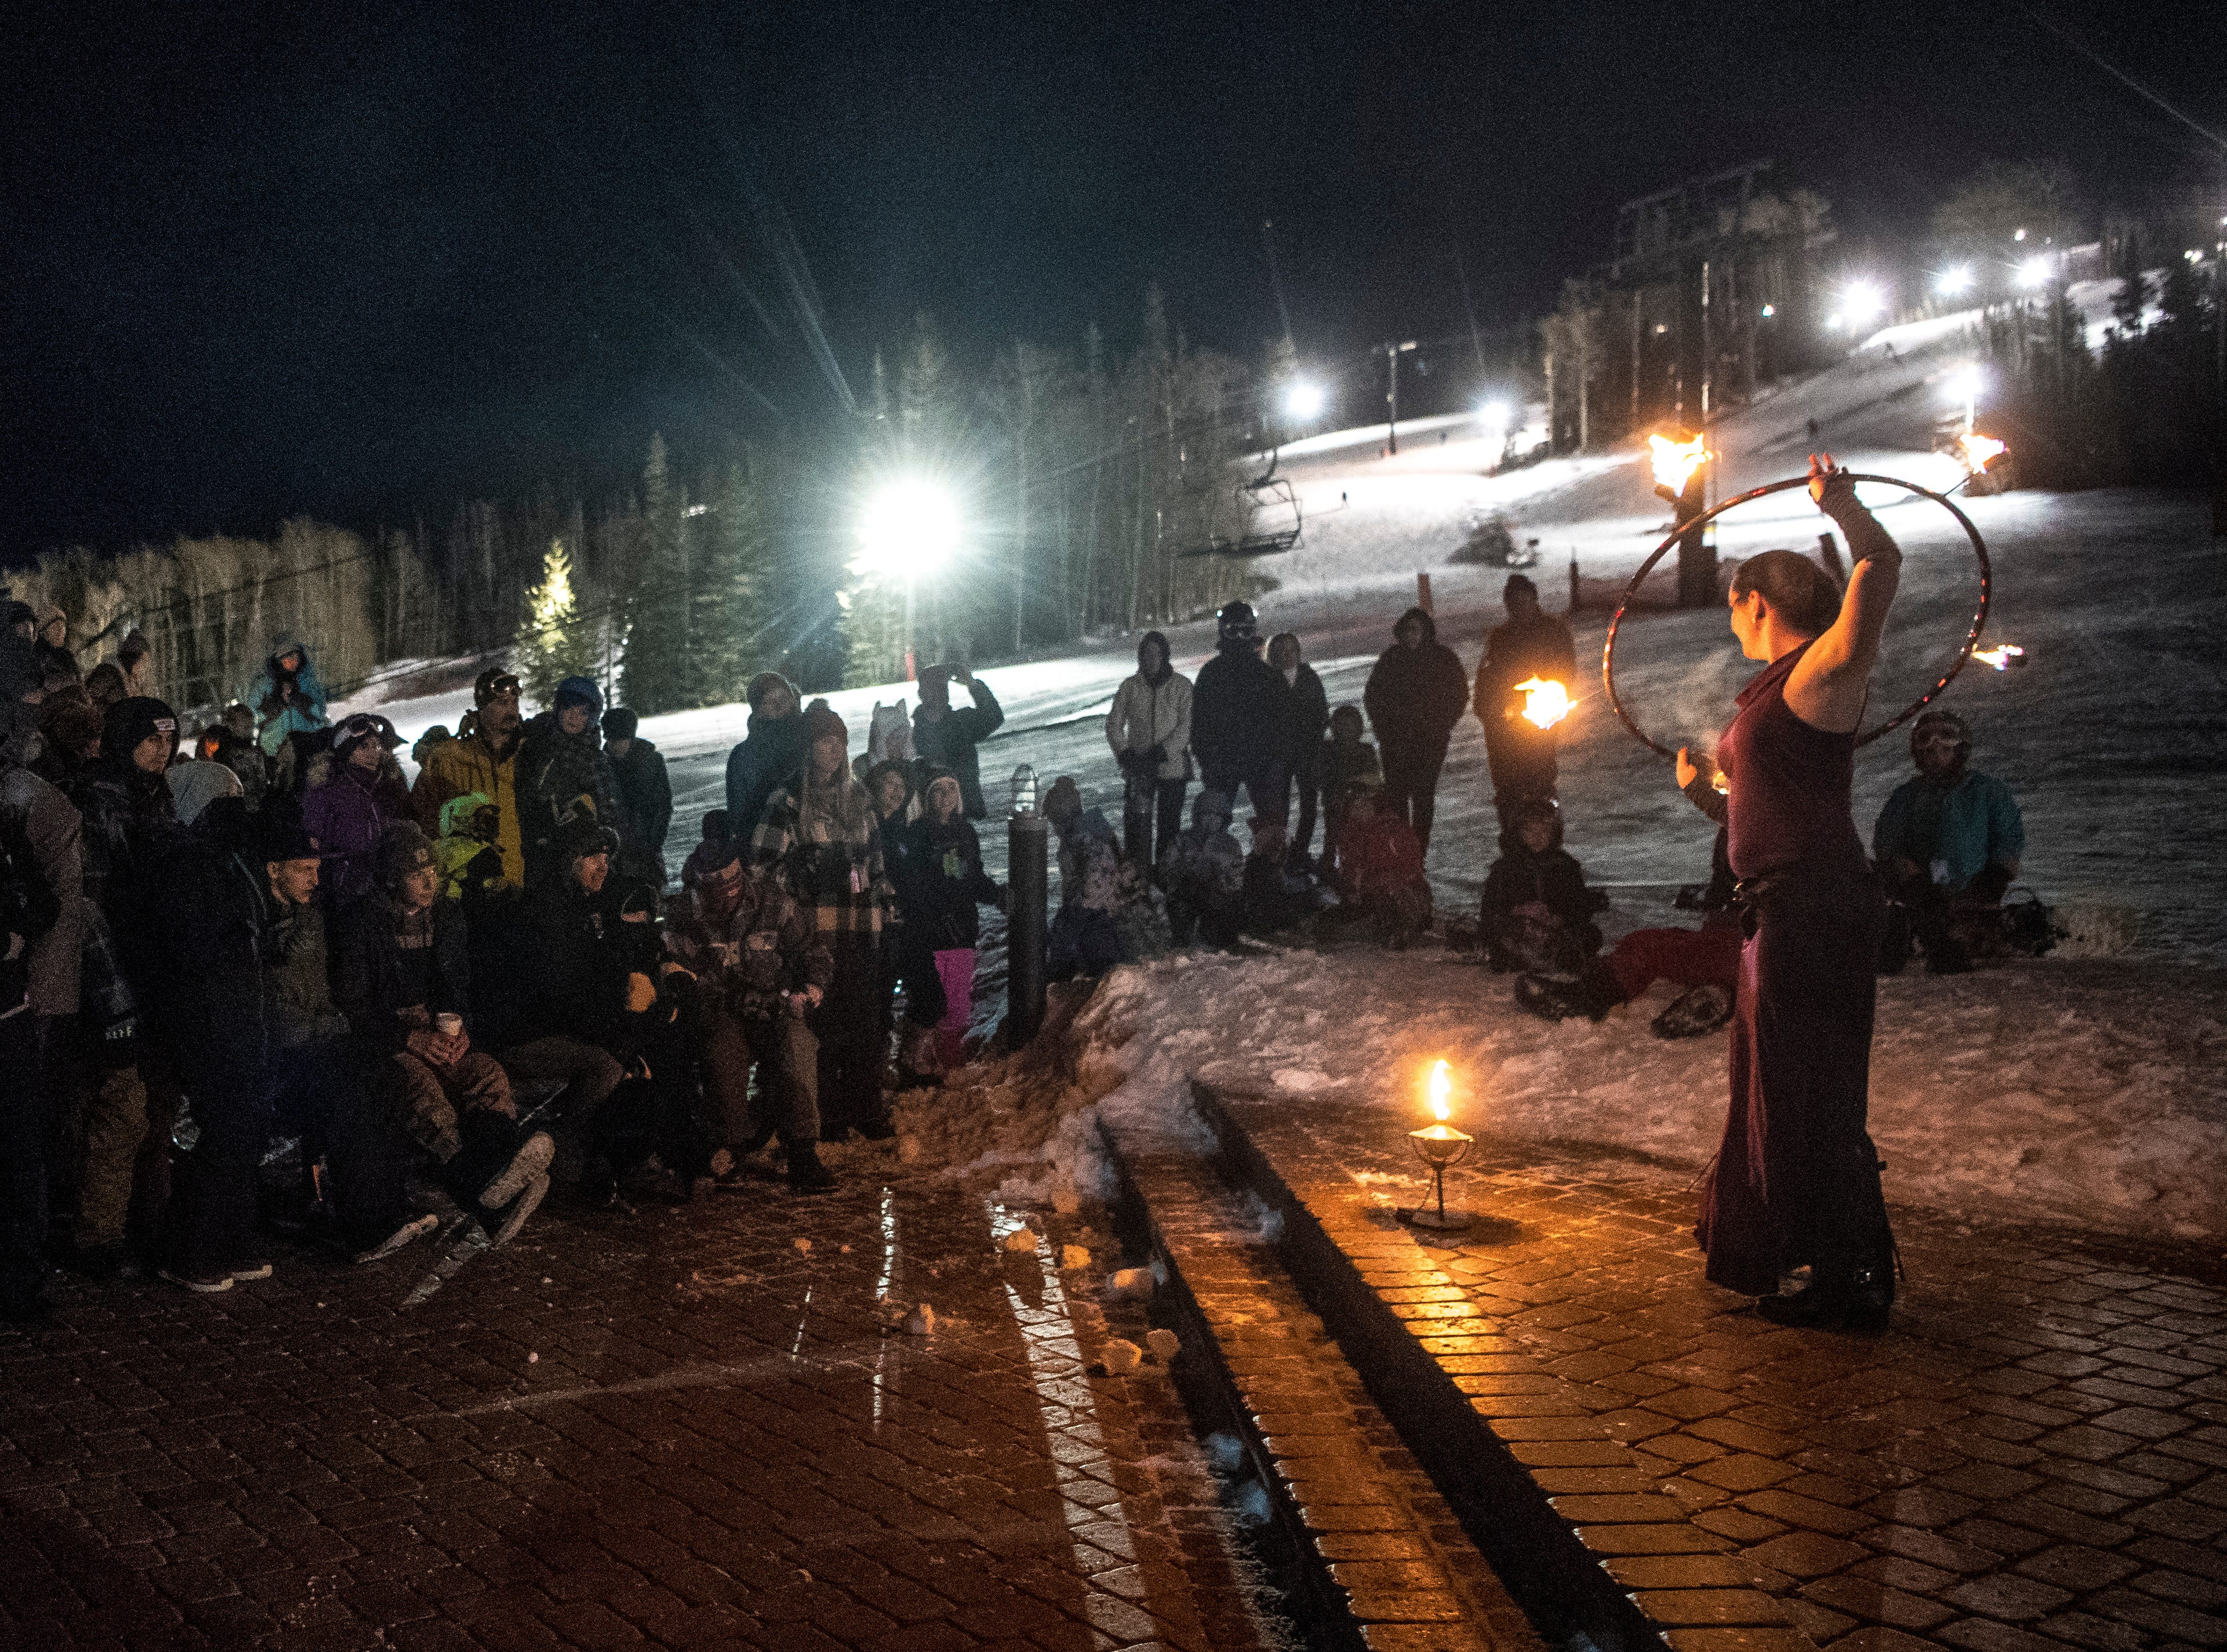 Fire dancers perform at Brian Head Resort during a sacrifice to ULLR, norse god of winter, Saturday, December 8, 2018. The celebration included live music, a drum circle, and fire dancing.